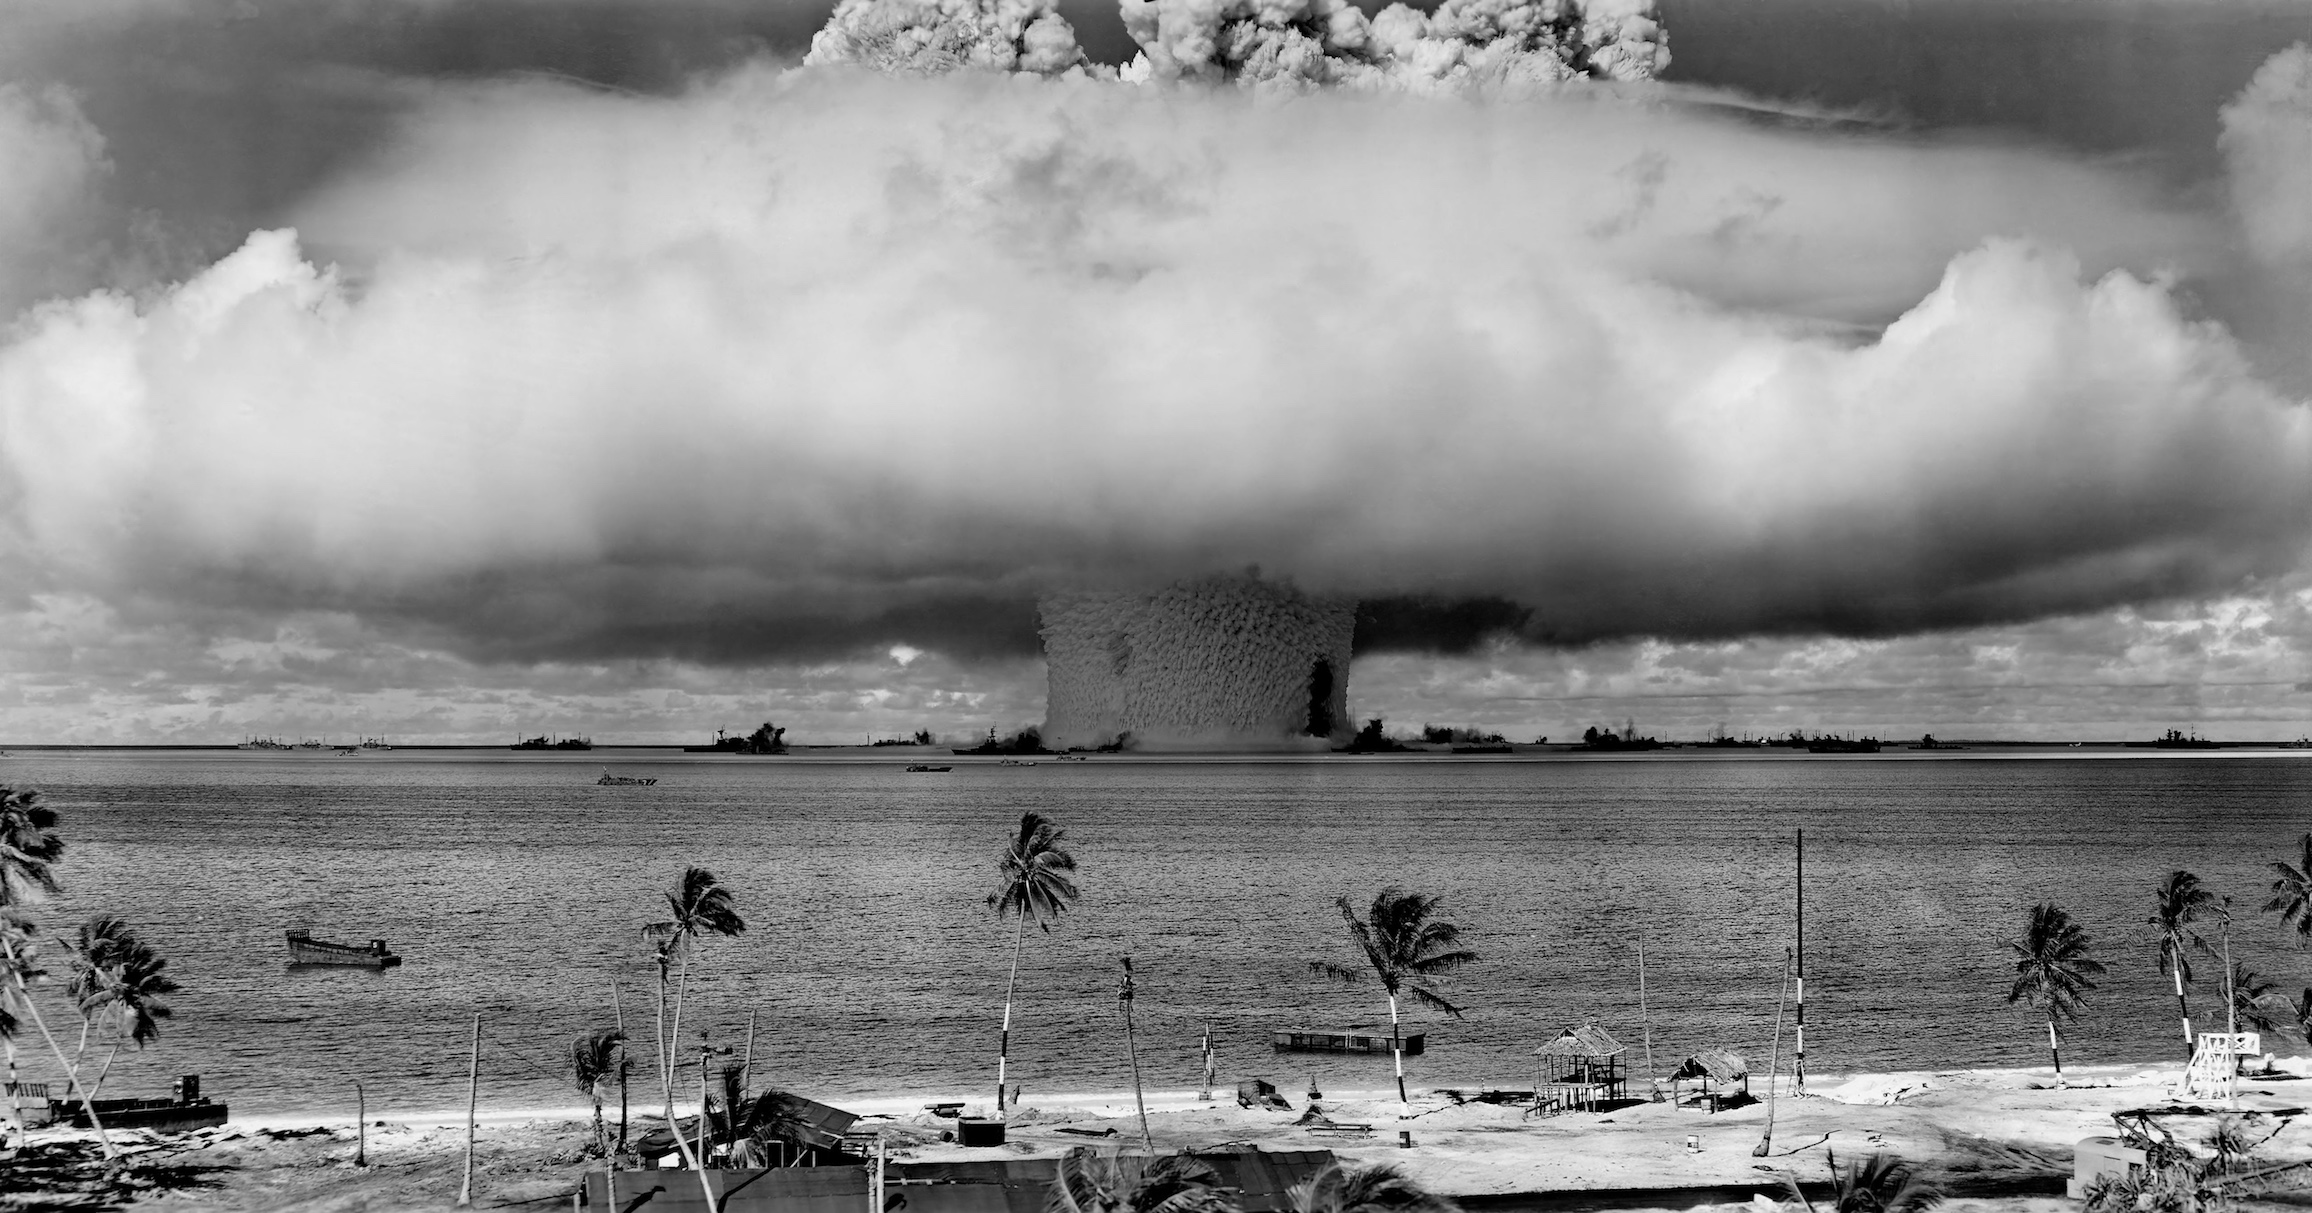 Mushroom-shaped cloud and water column from the underwater nuclear explosion of July 25, 1946, which was part of Operation Crossroads. Credit: Wikipedia